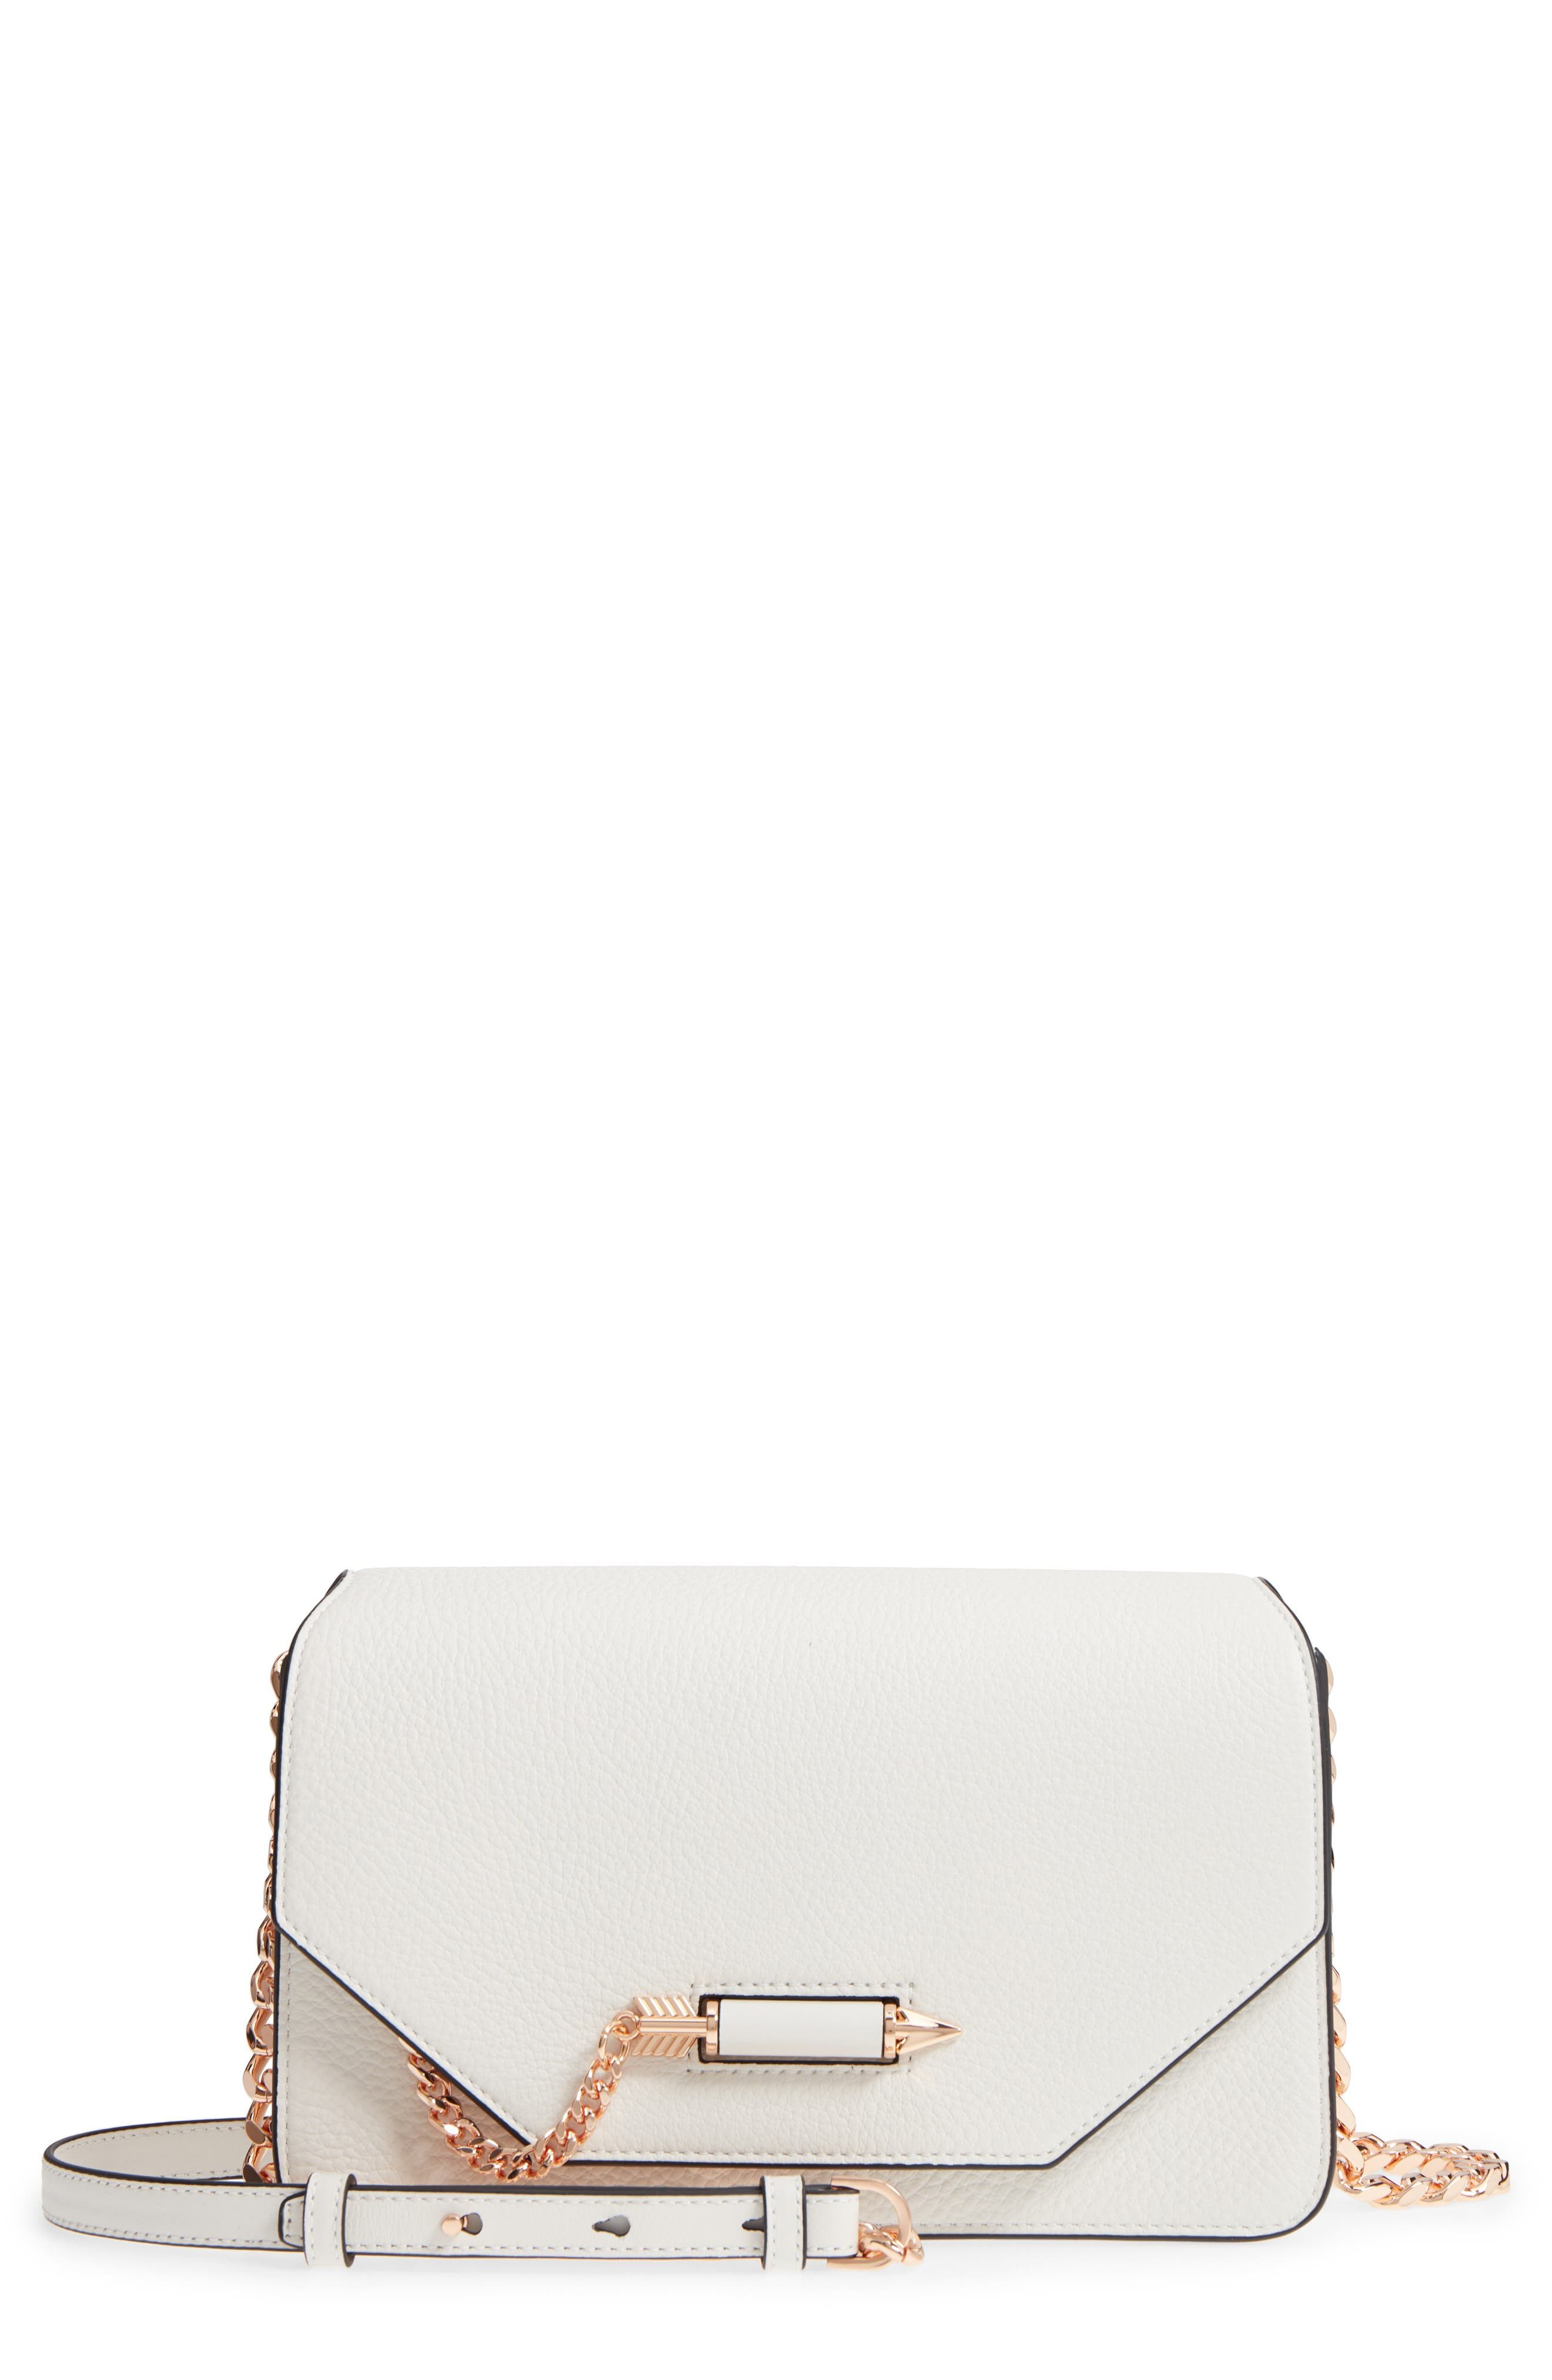 Cortney Nappa Leather Shoulder/Crossbody Bag,                             Main thumbnail 1, color,                             WHITE/ ROSE GOLD